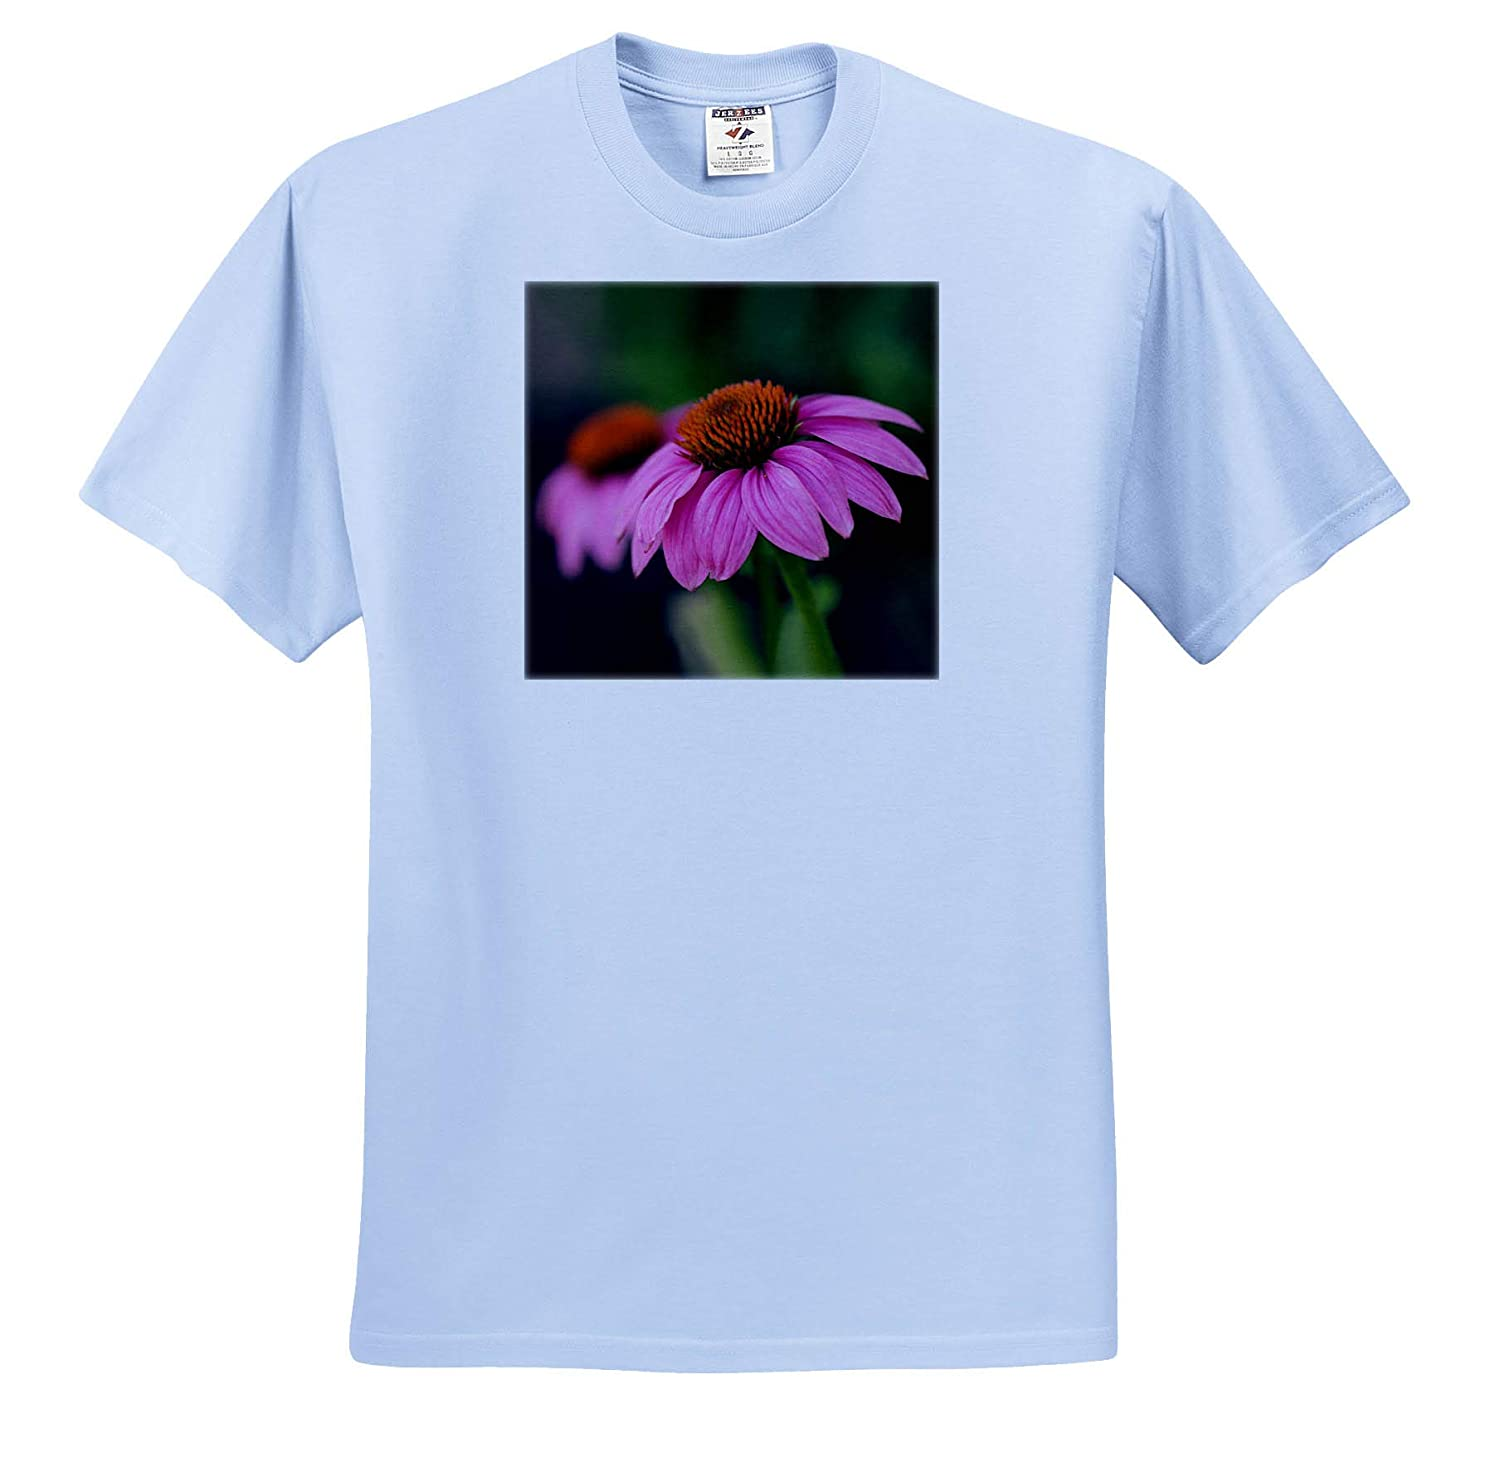 ts/_315550 3dRose Stamp City - Adult T-Shirt XL Flowers A Macro Photograph of a Pair of Pink coneflowers